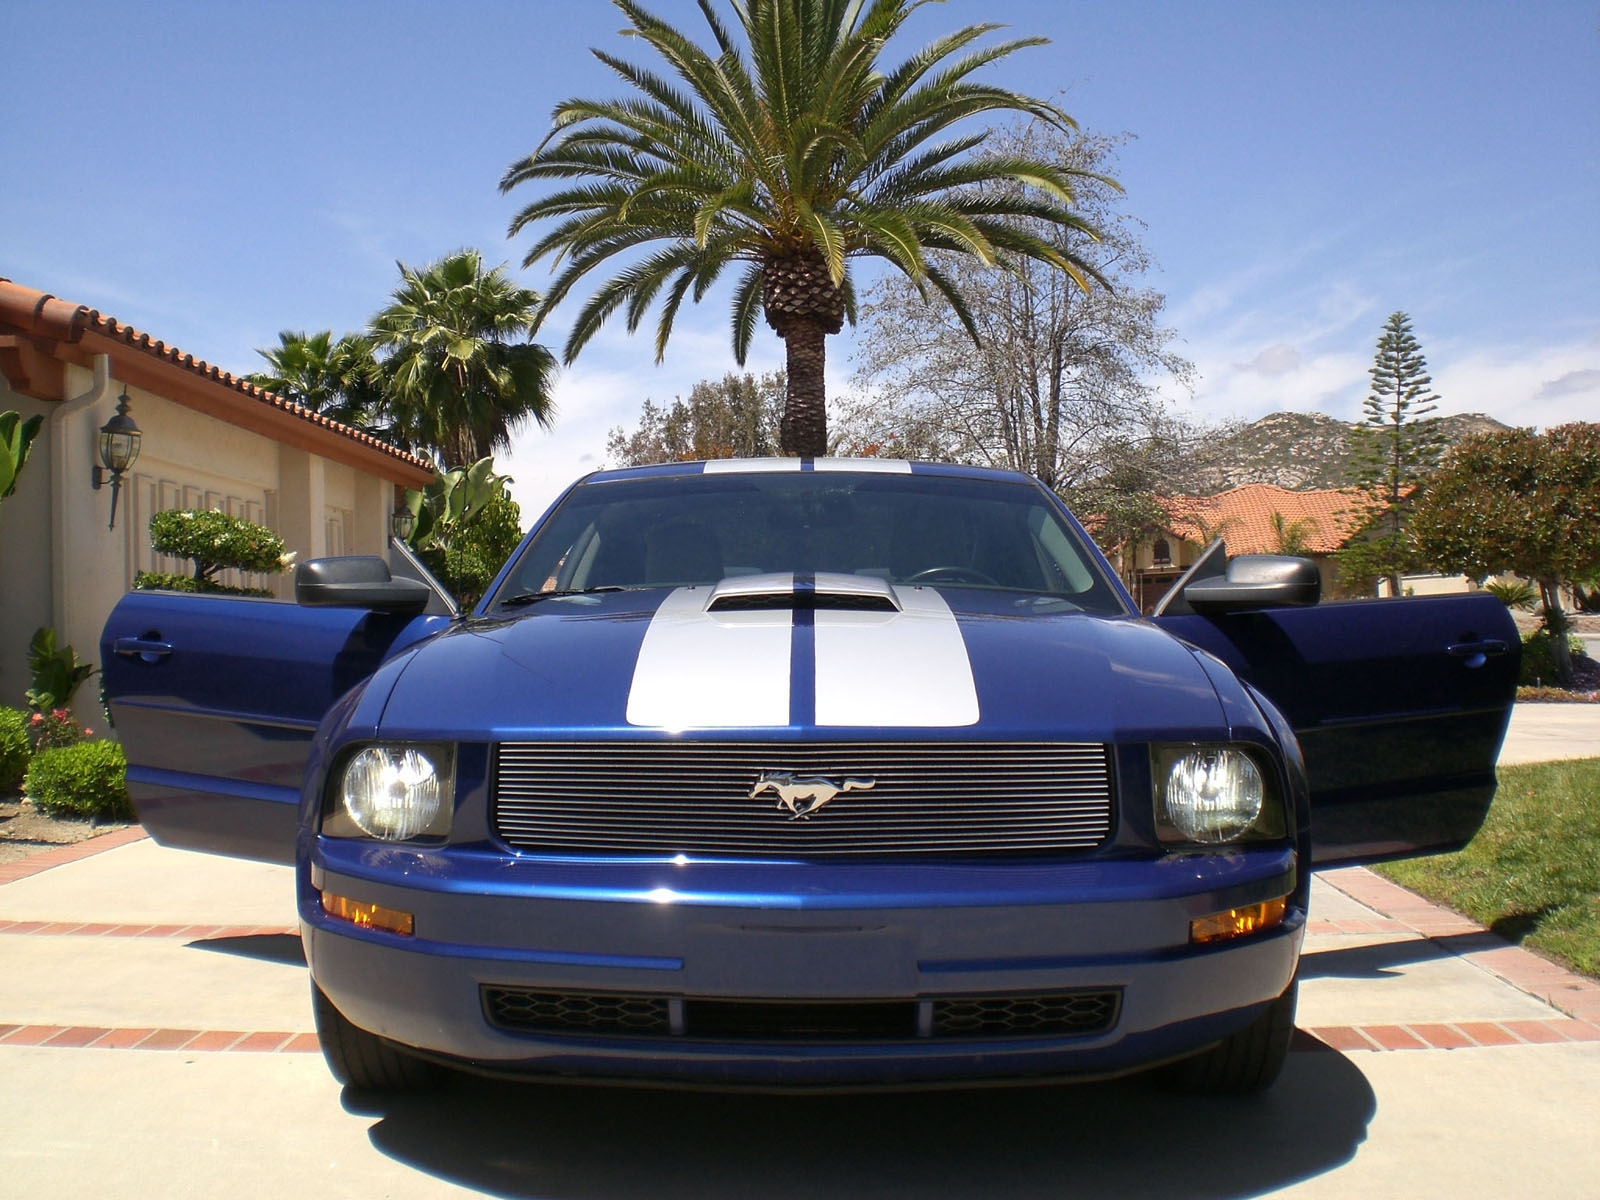 CaliPhattie's 2005 Ford Mustang